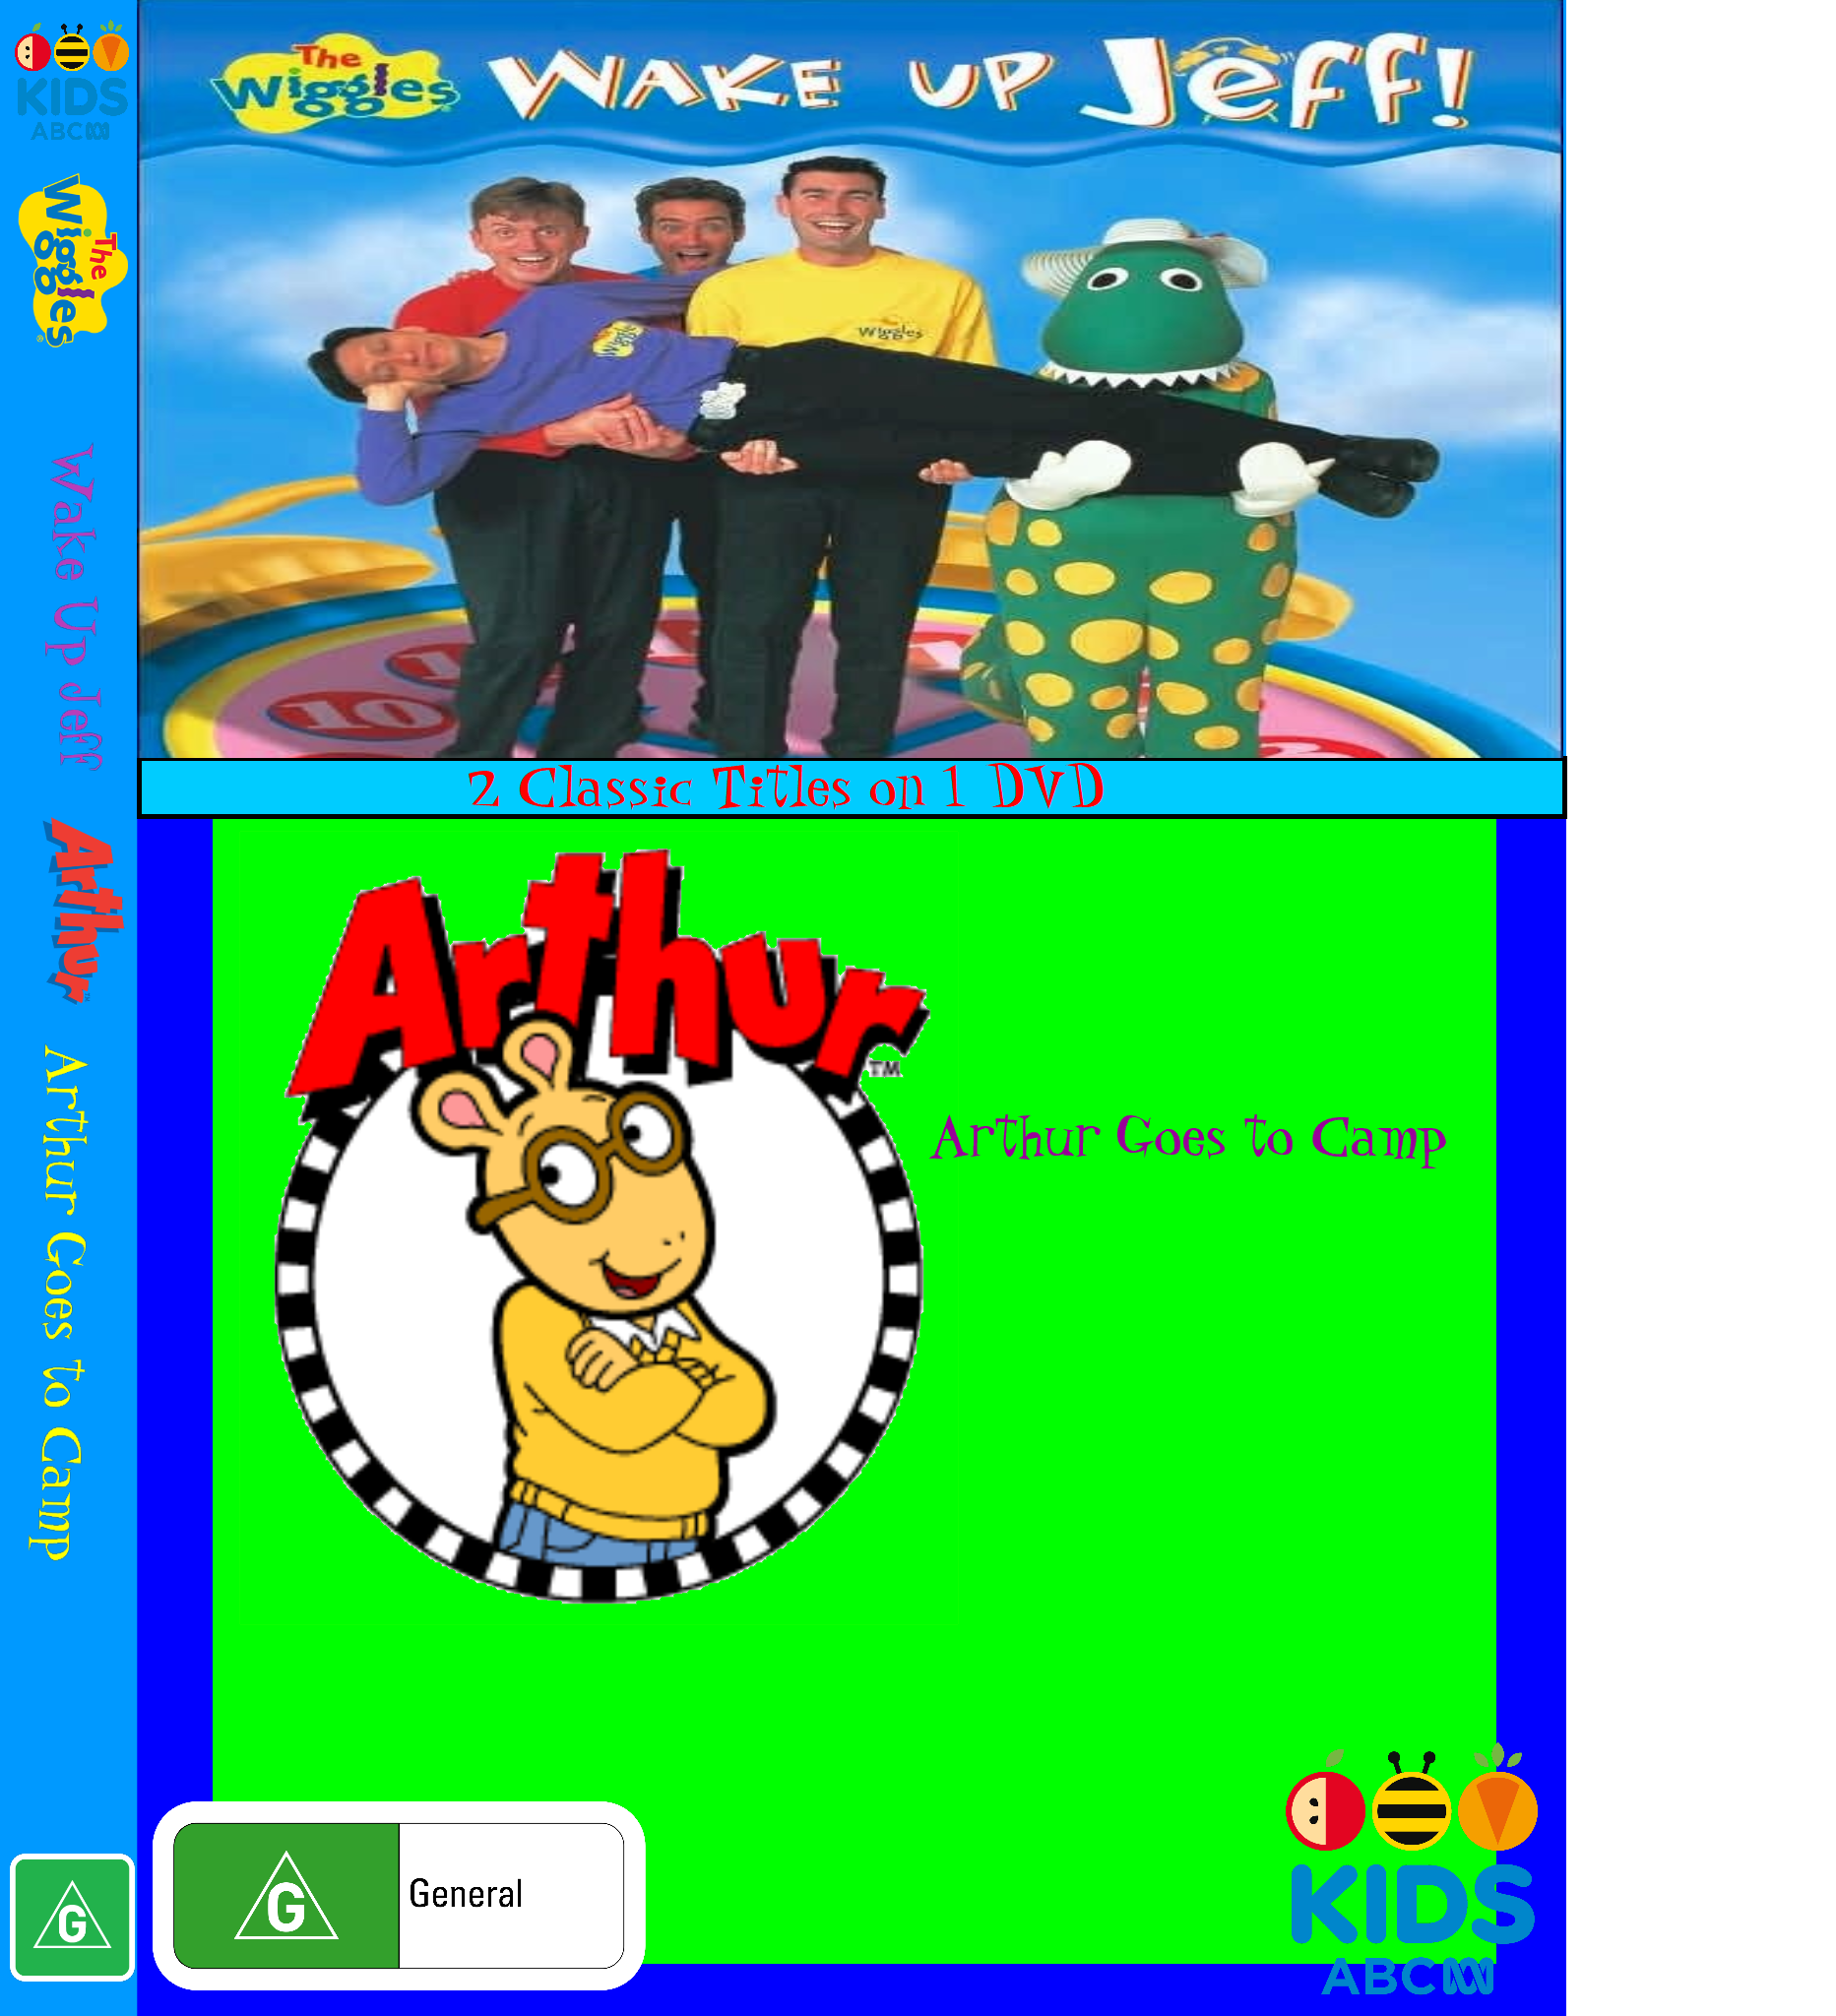 The Wiggles and Arthur: Wake Up Jeff and Arthur Goes to Camp (video)